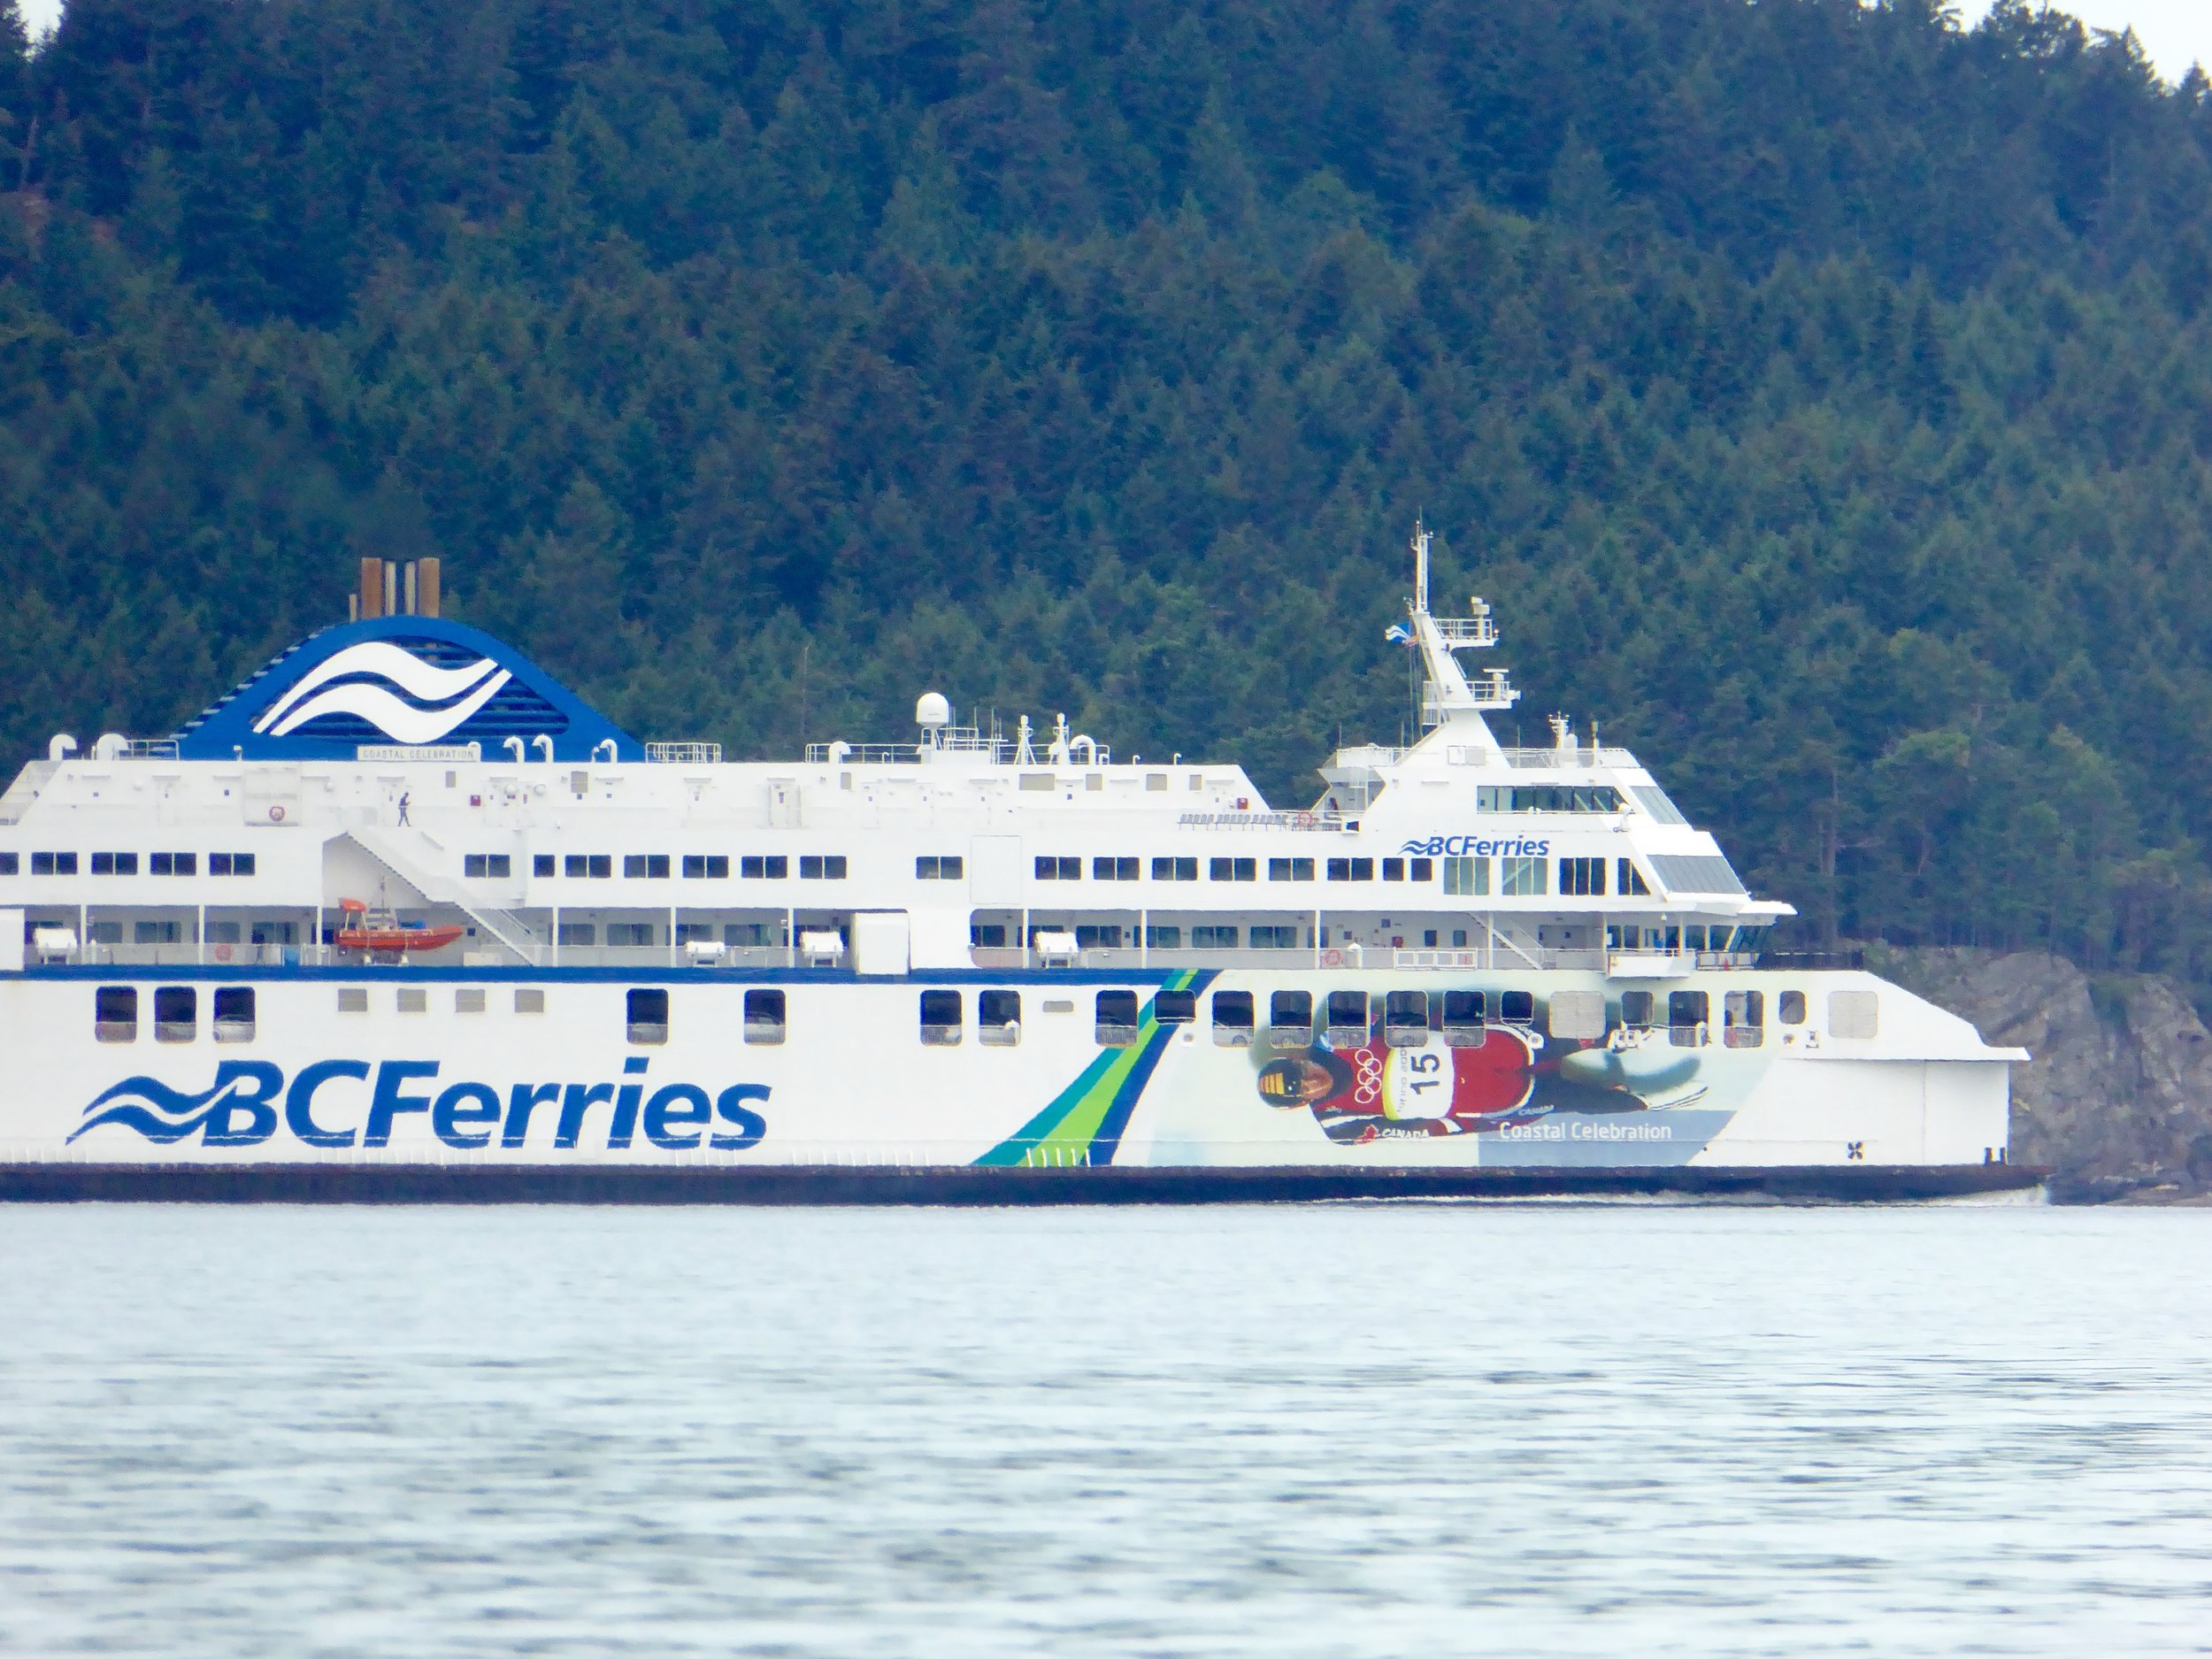 Lots of ferries today!